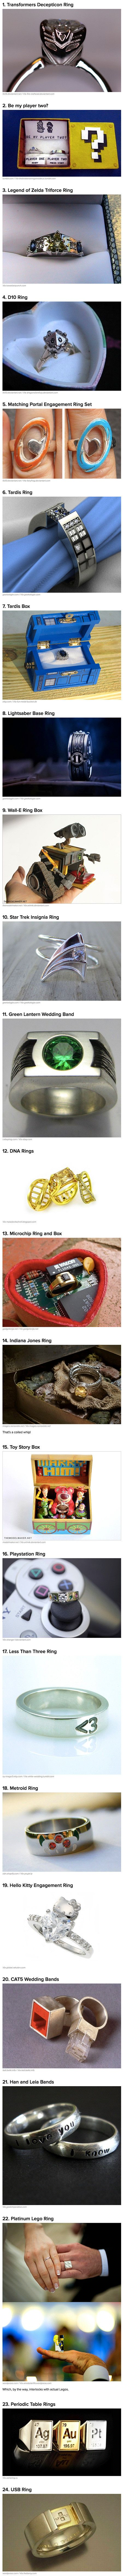 Here are some of the geekist engagement rings and wedding bands in the world.